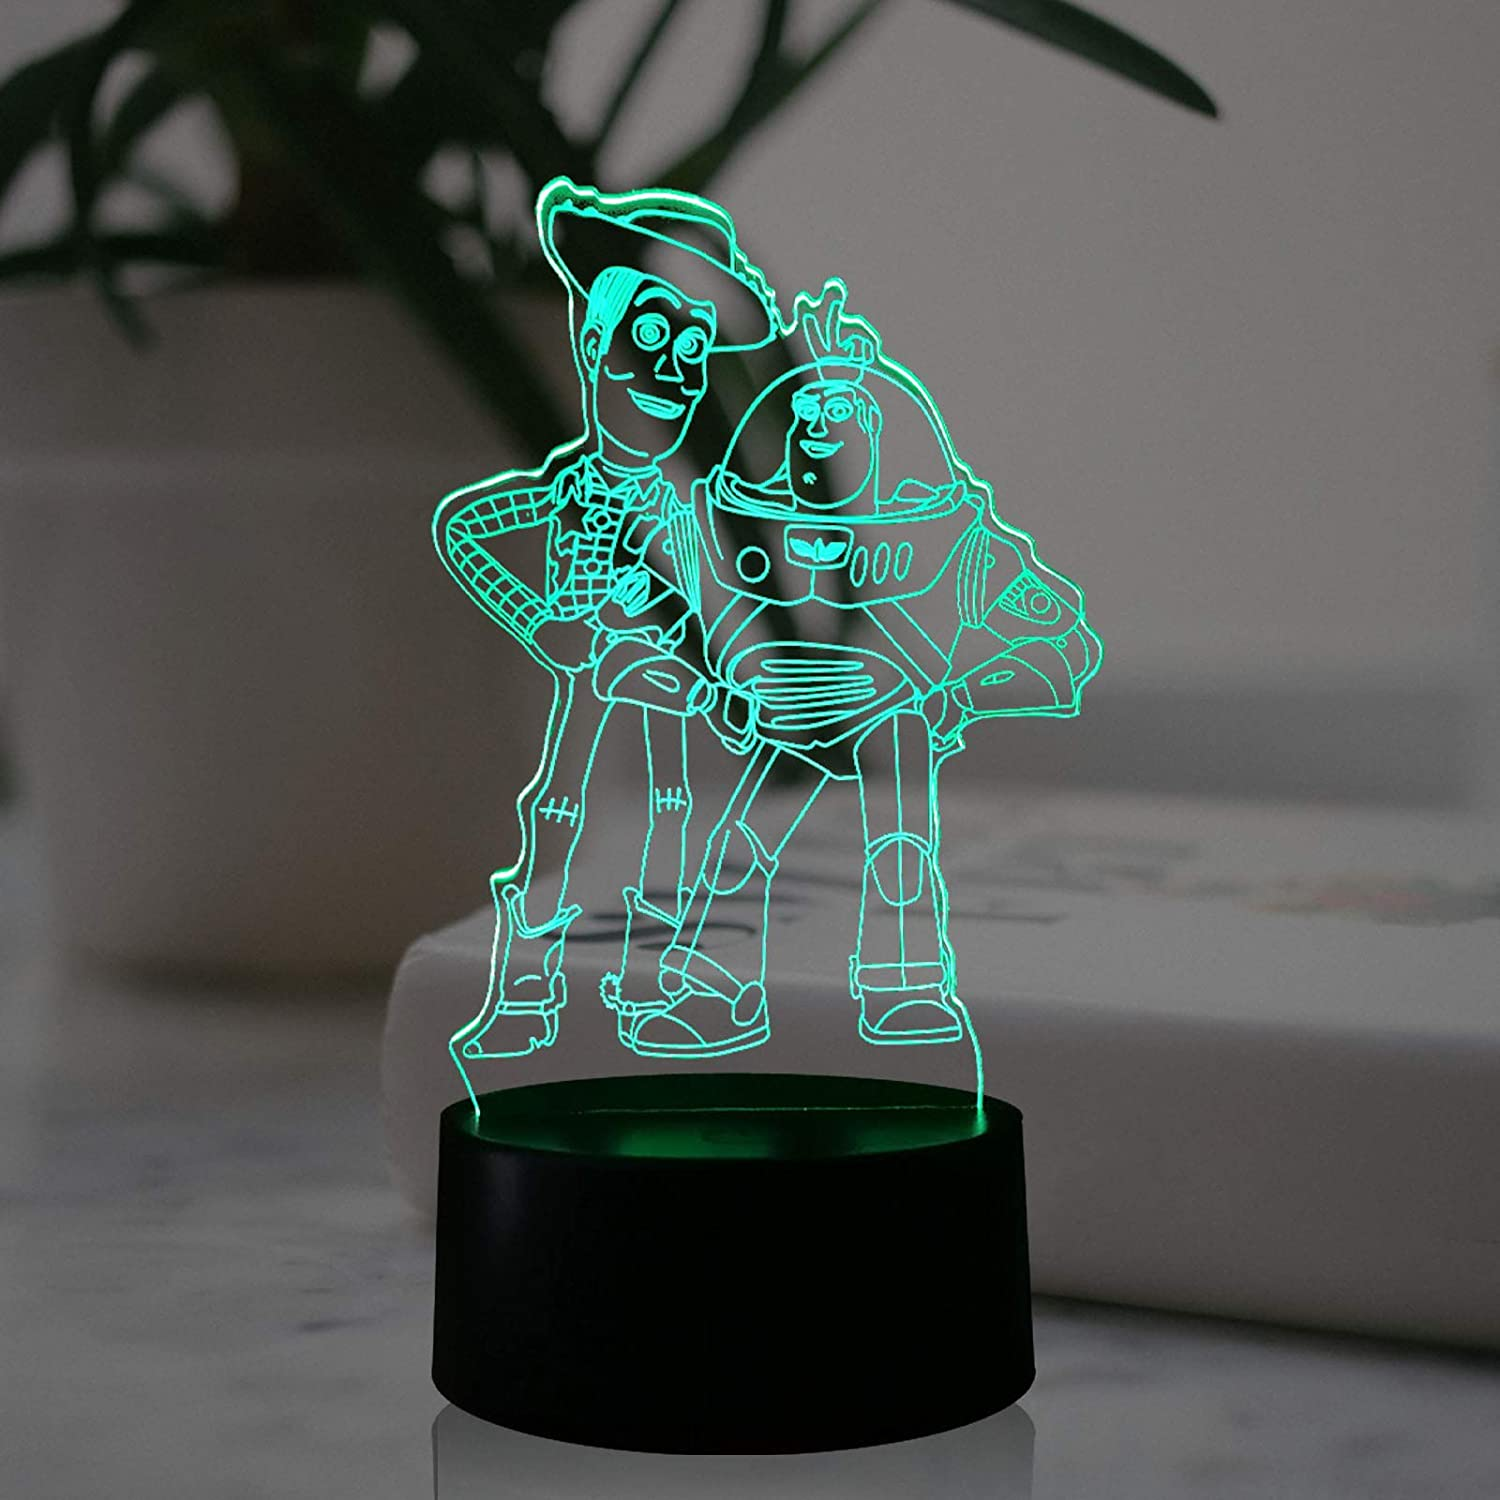 Toy Store Buzz Light Year Woody LED Cartoon Lamp for Boy Bedroom Smart Sensor USB Touch Change Multi-Colored 7 Color RGB Decor Mood Table Night Light Kids Birthday Kids Gift(Buzz Light Year Friends)